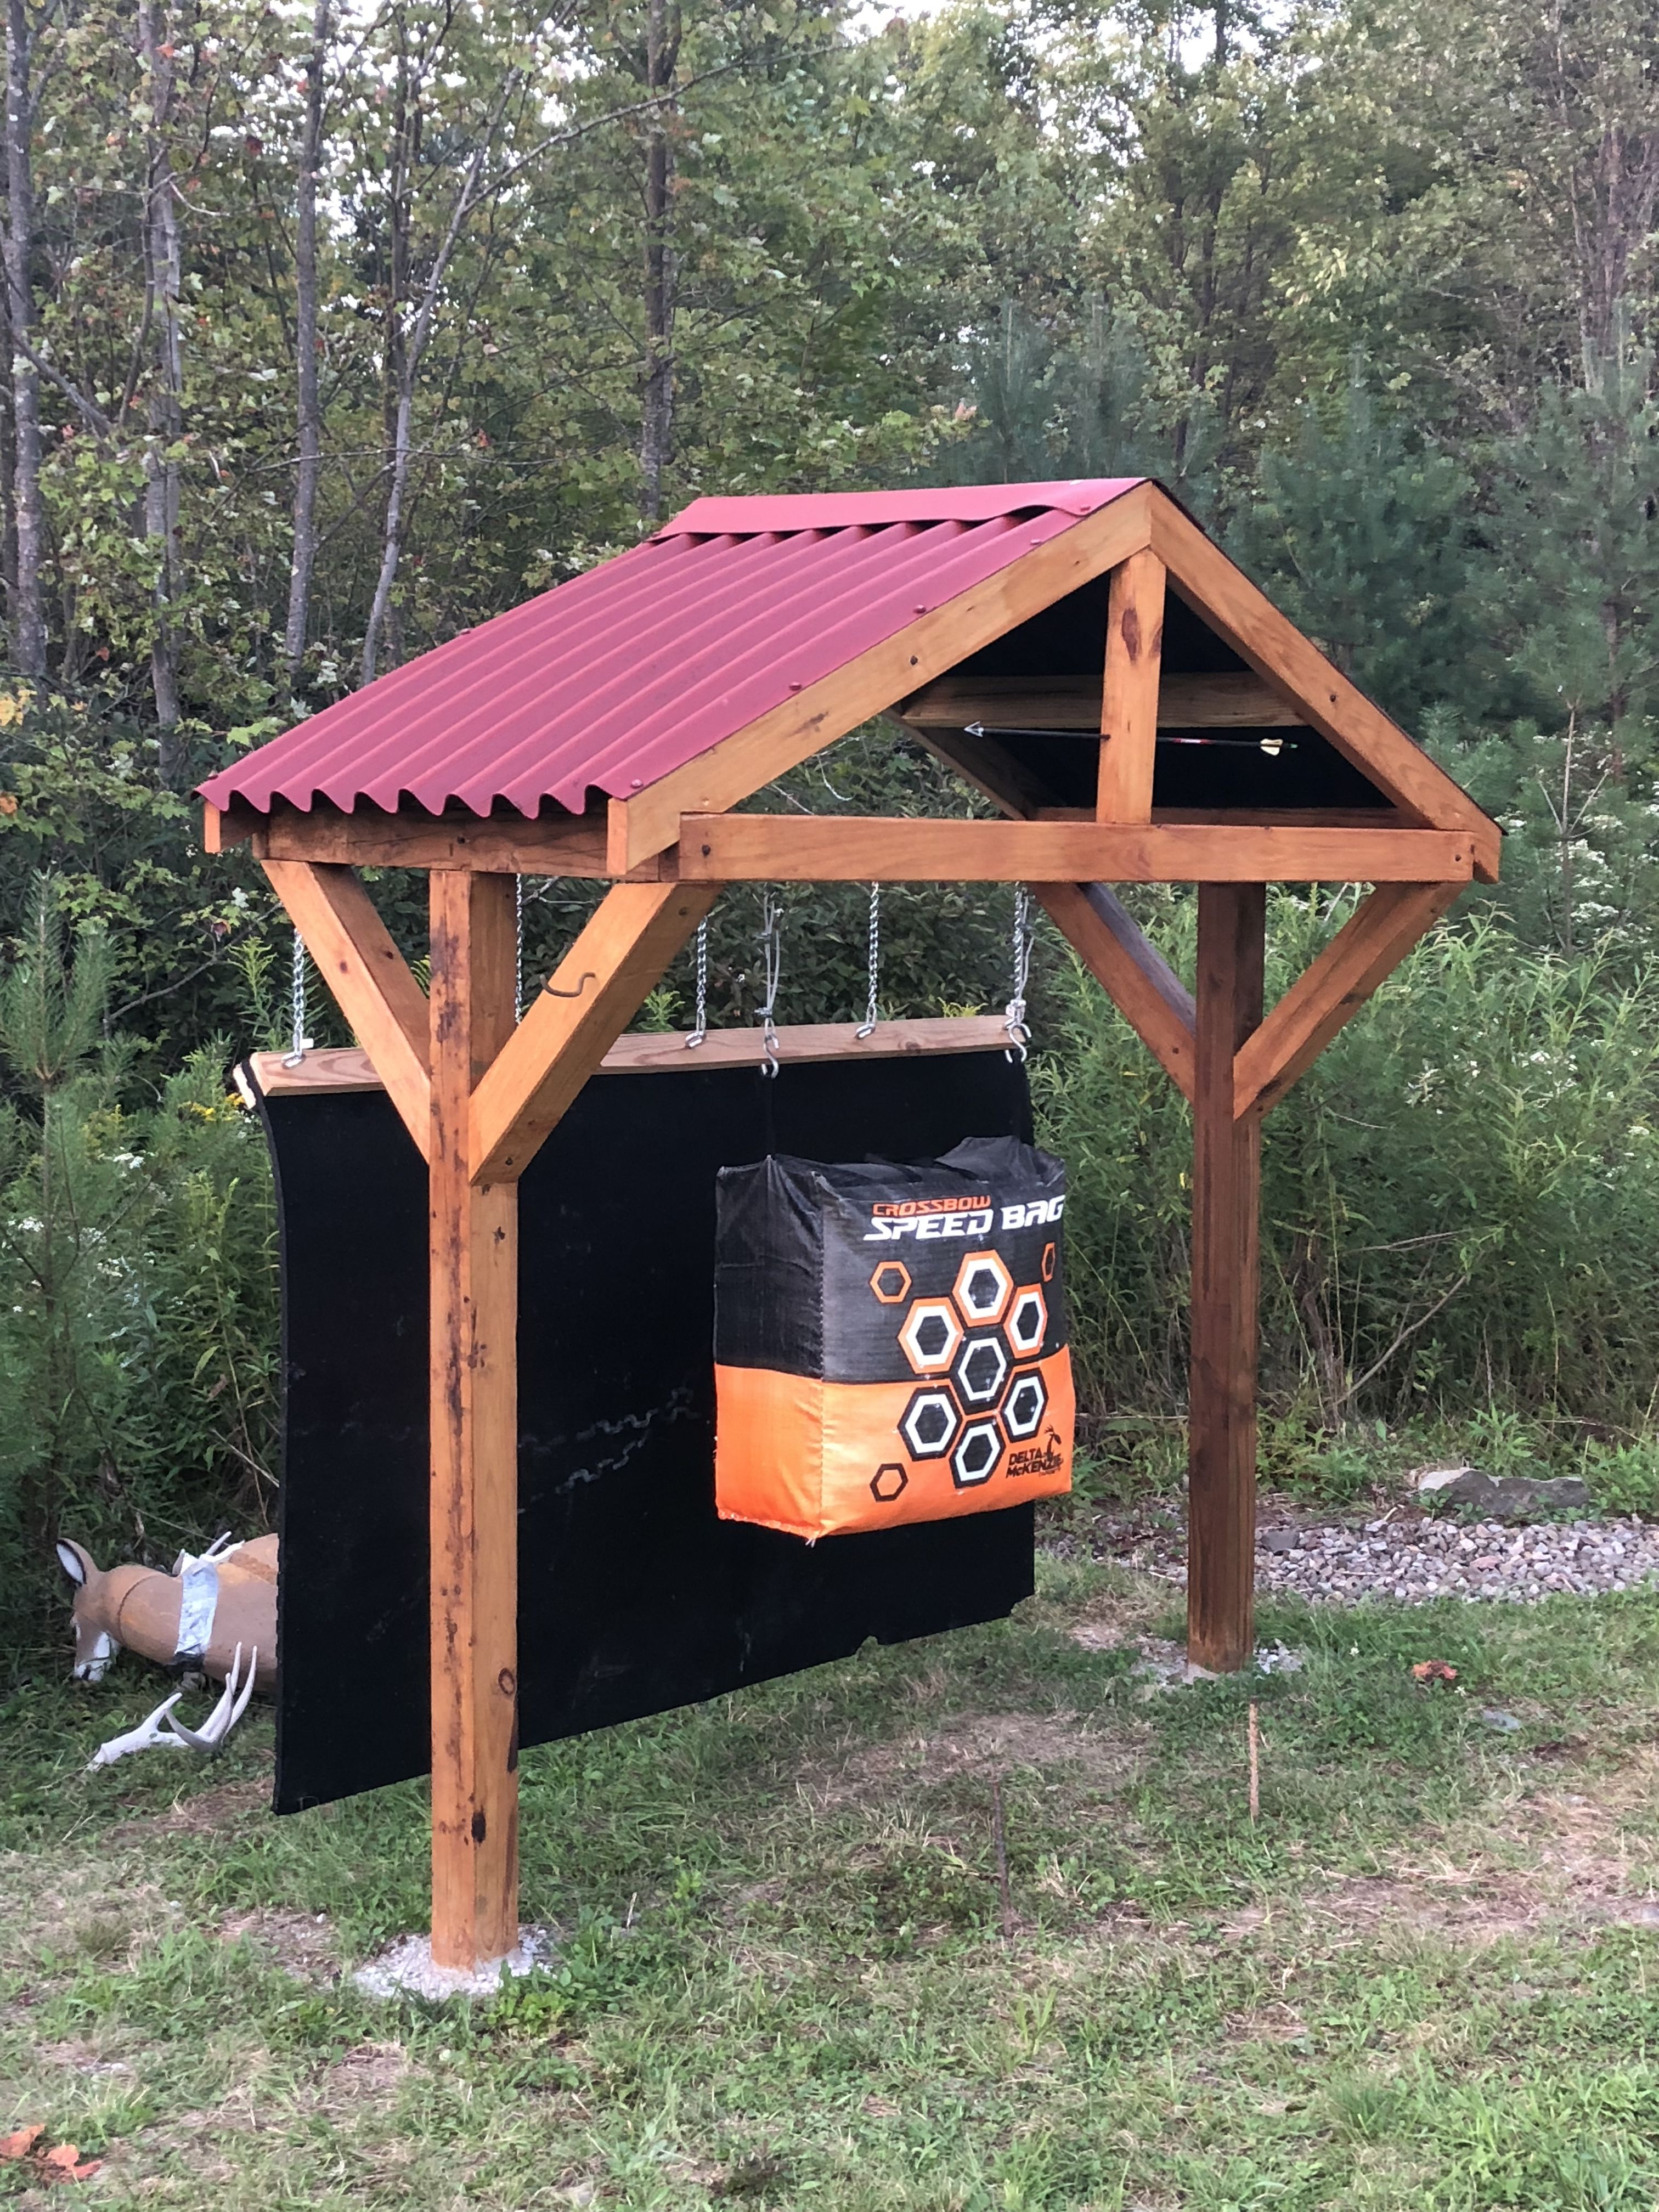 Pin By Becca Mitchell On Archery Stand Hunting Diy Diy Archery Target Archery Diy backyard archery range